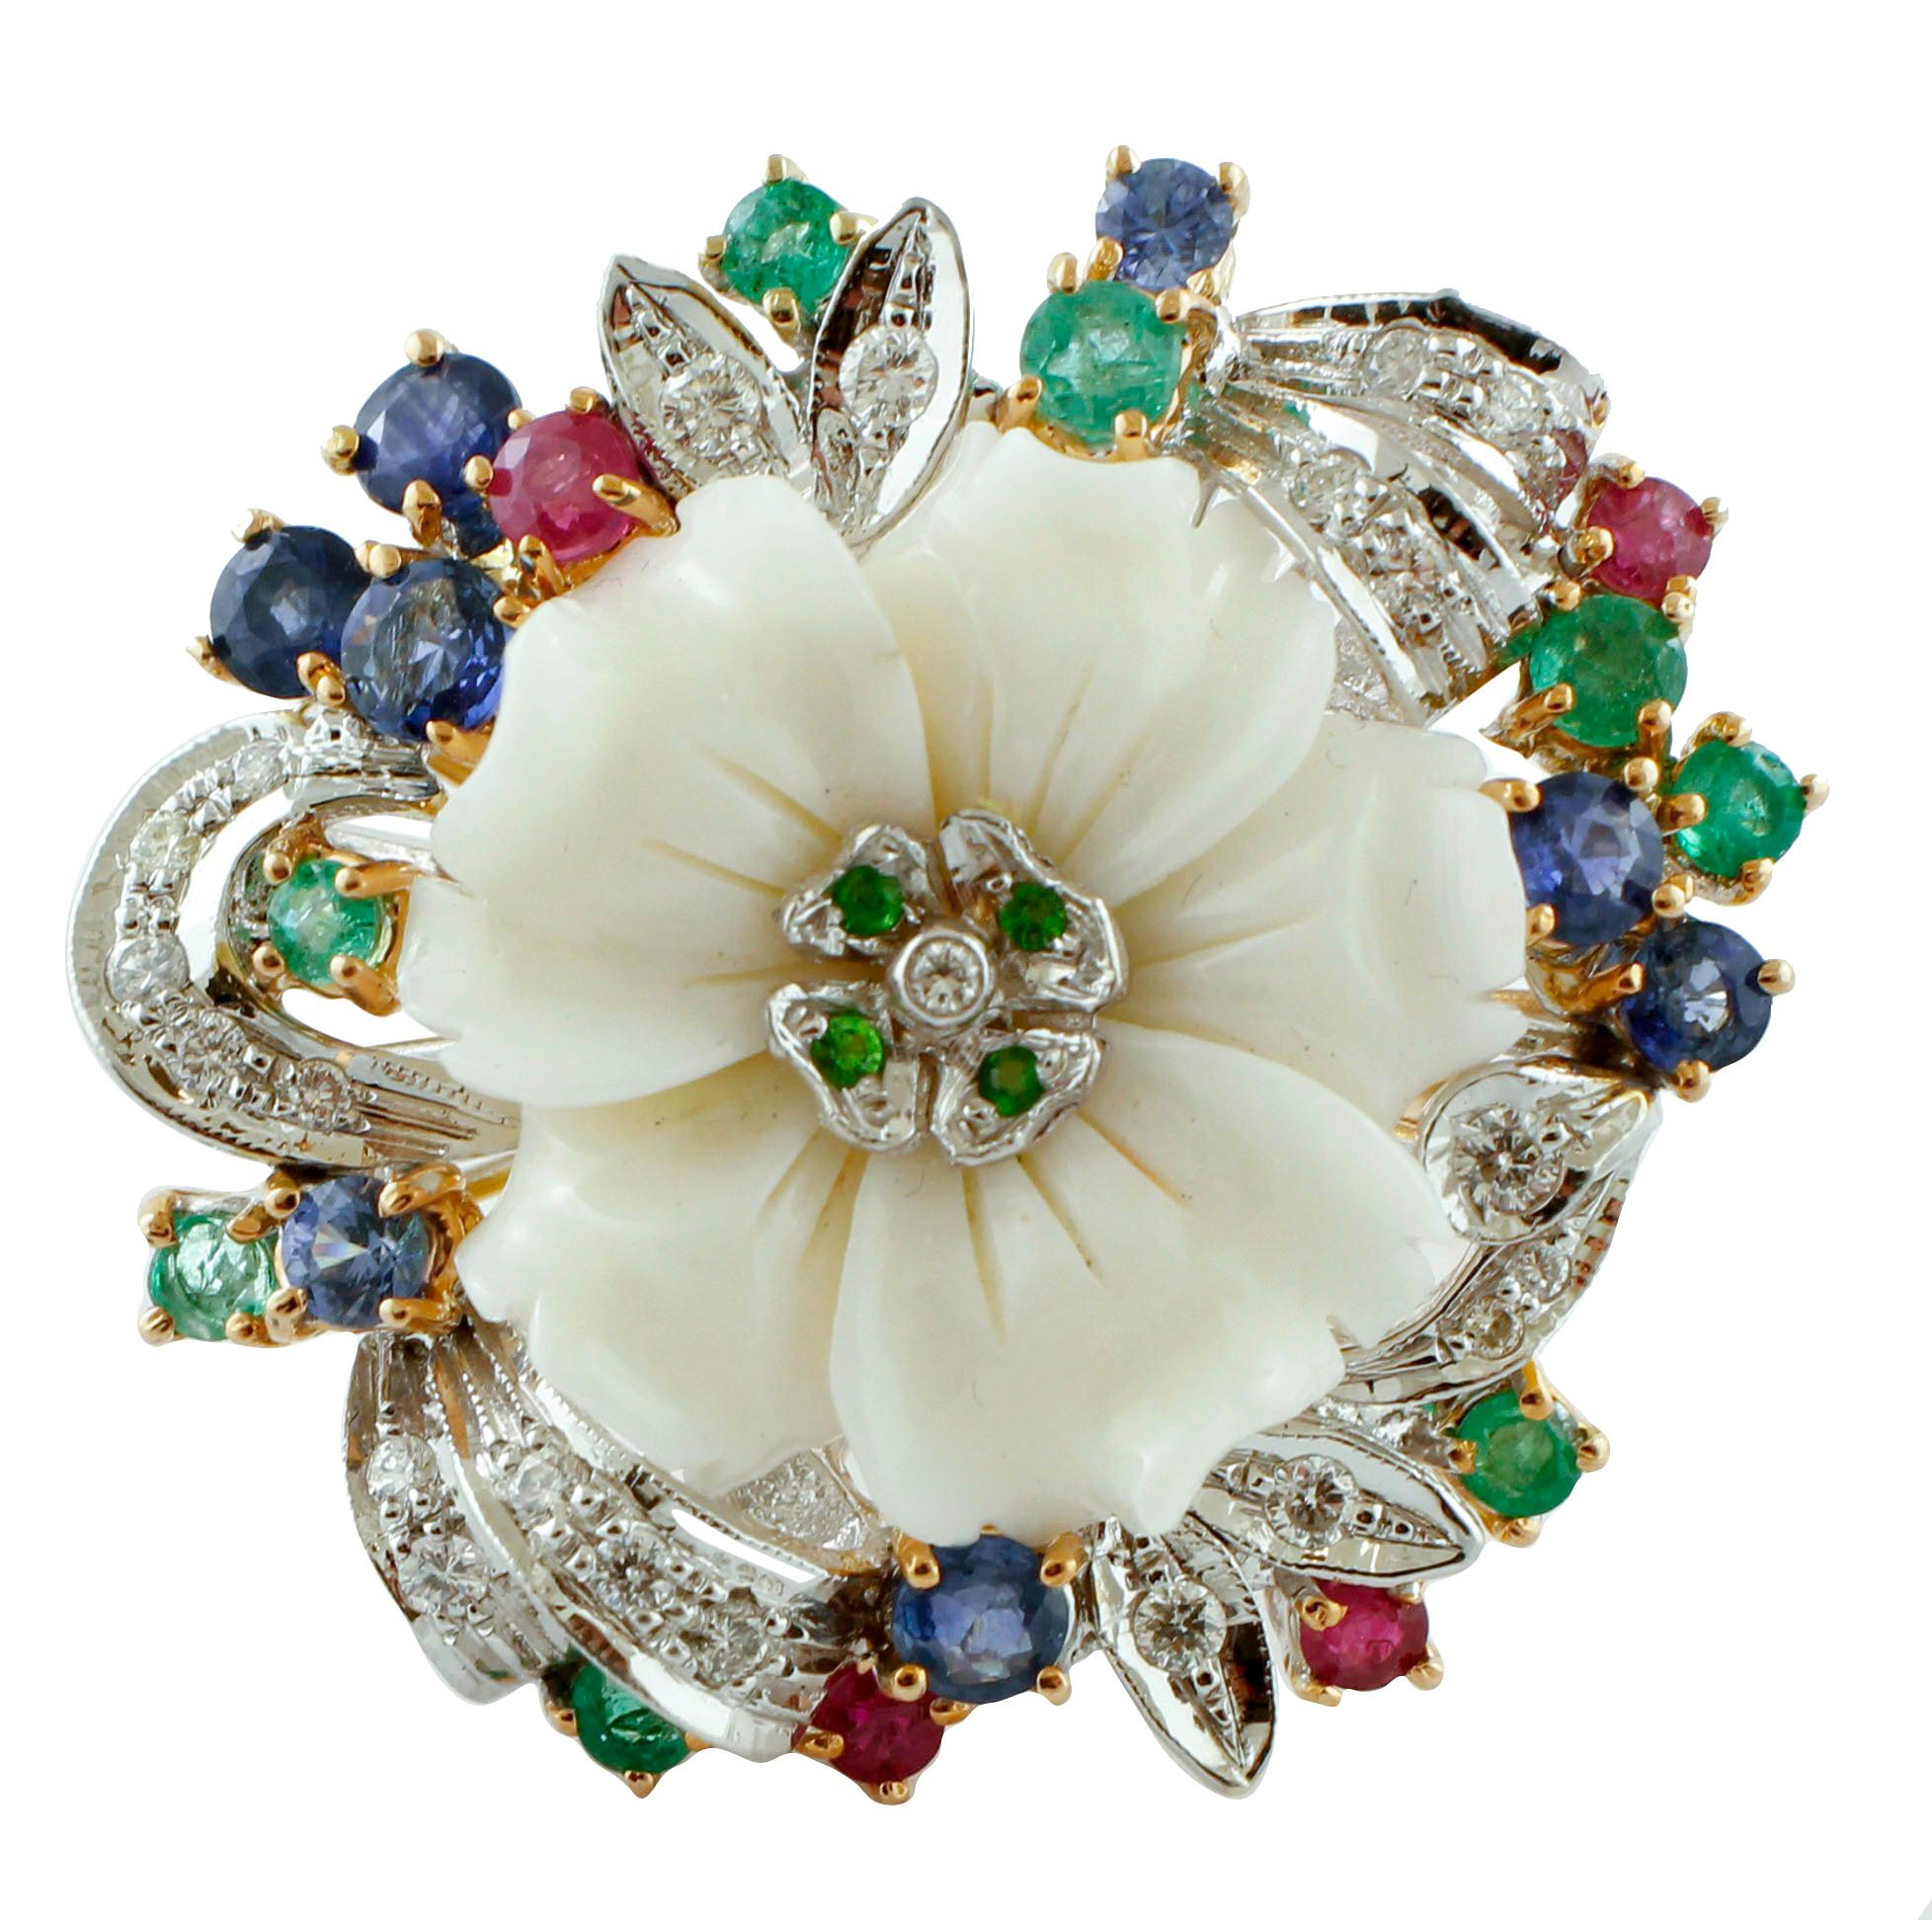 Diamonds, Rubies, Emeralds, Sapphires,Tsavorites,White Coral, 14 Karat Gold Ring